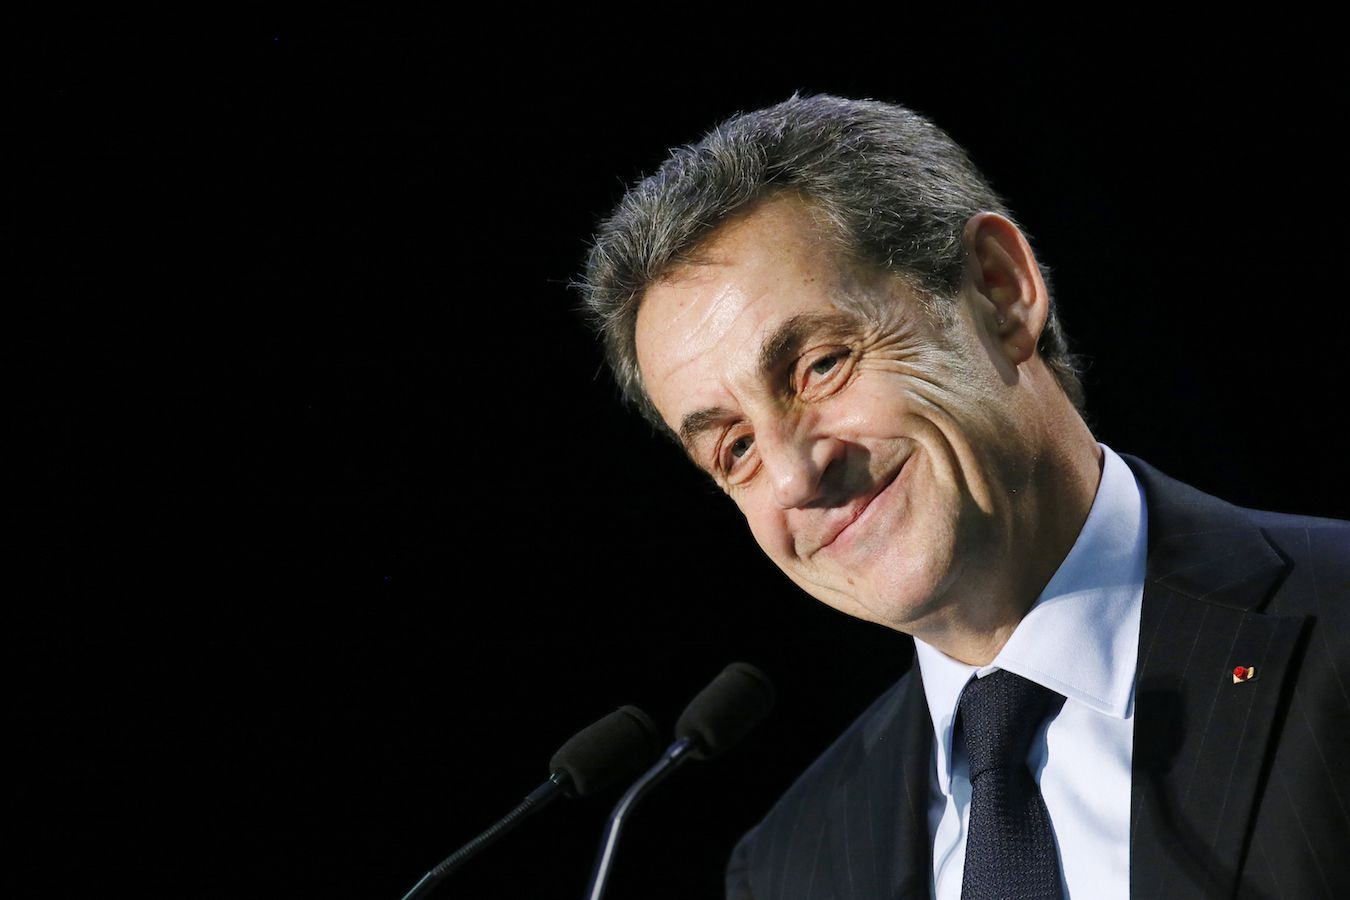 Nicolas Sarkozy, former French president and current UMP conservative political party head, attends a political rally in the Essonne department as he campaigns for French departmental elections in Palaiseau, near Paris, March 16, 2015. The two-round departmental elections will take place in France on March 22 and March 29.   REUTERS/Gonzalo Fuentes (FRANCE - Tags: POLITICS ELECTIONS PROFILE HEADSHOT) - RTR4TM30